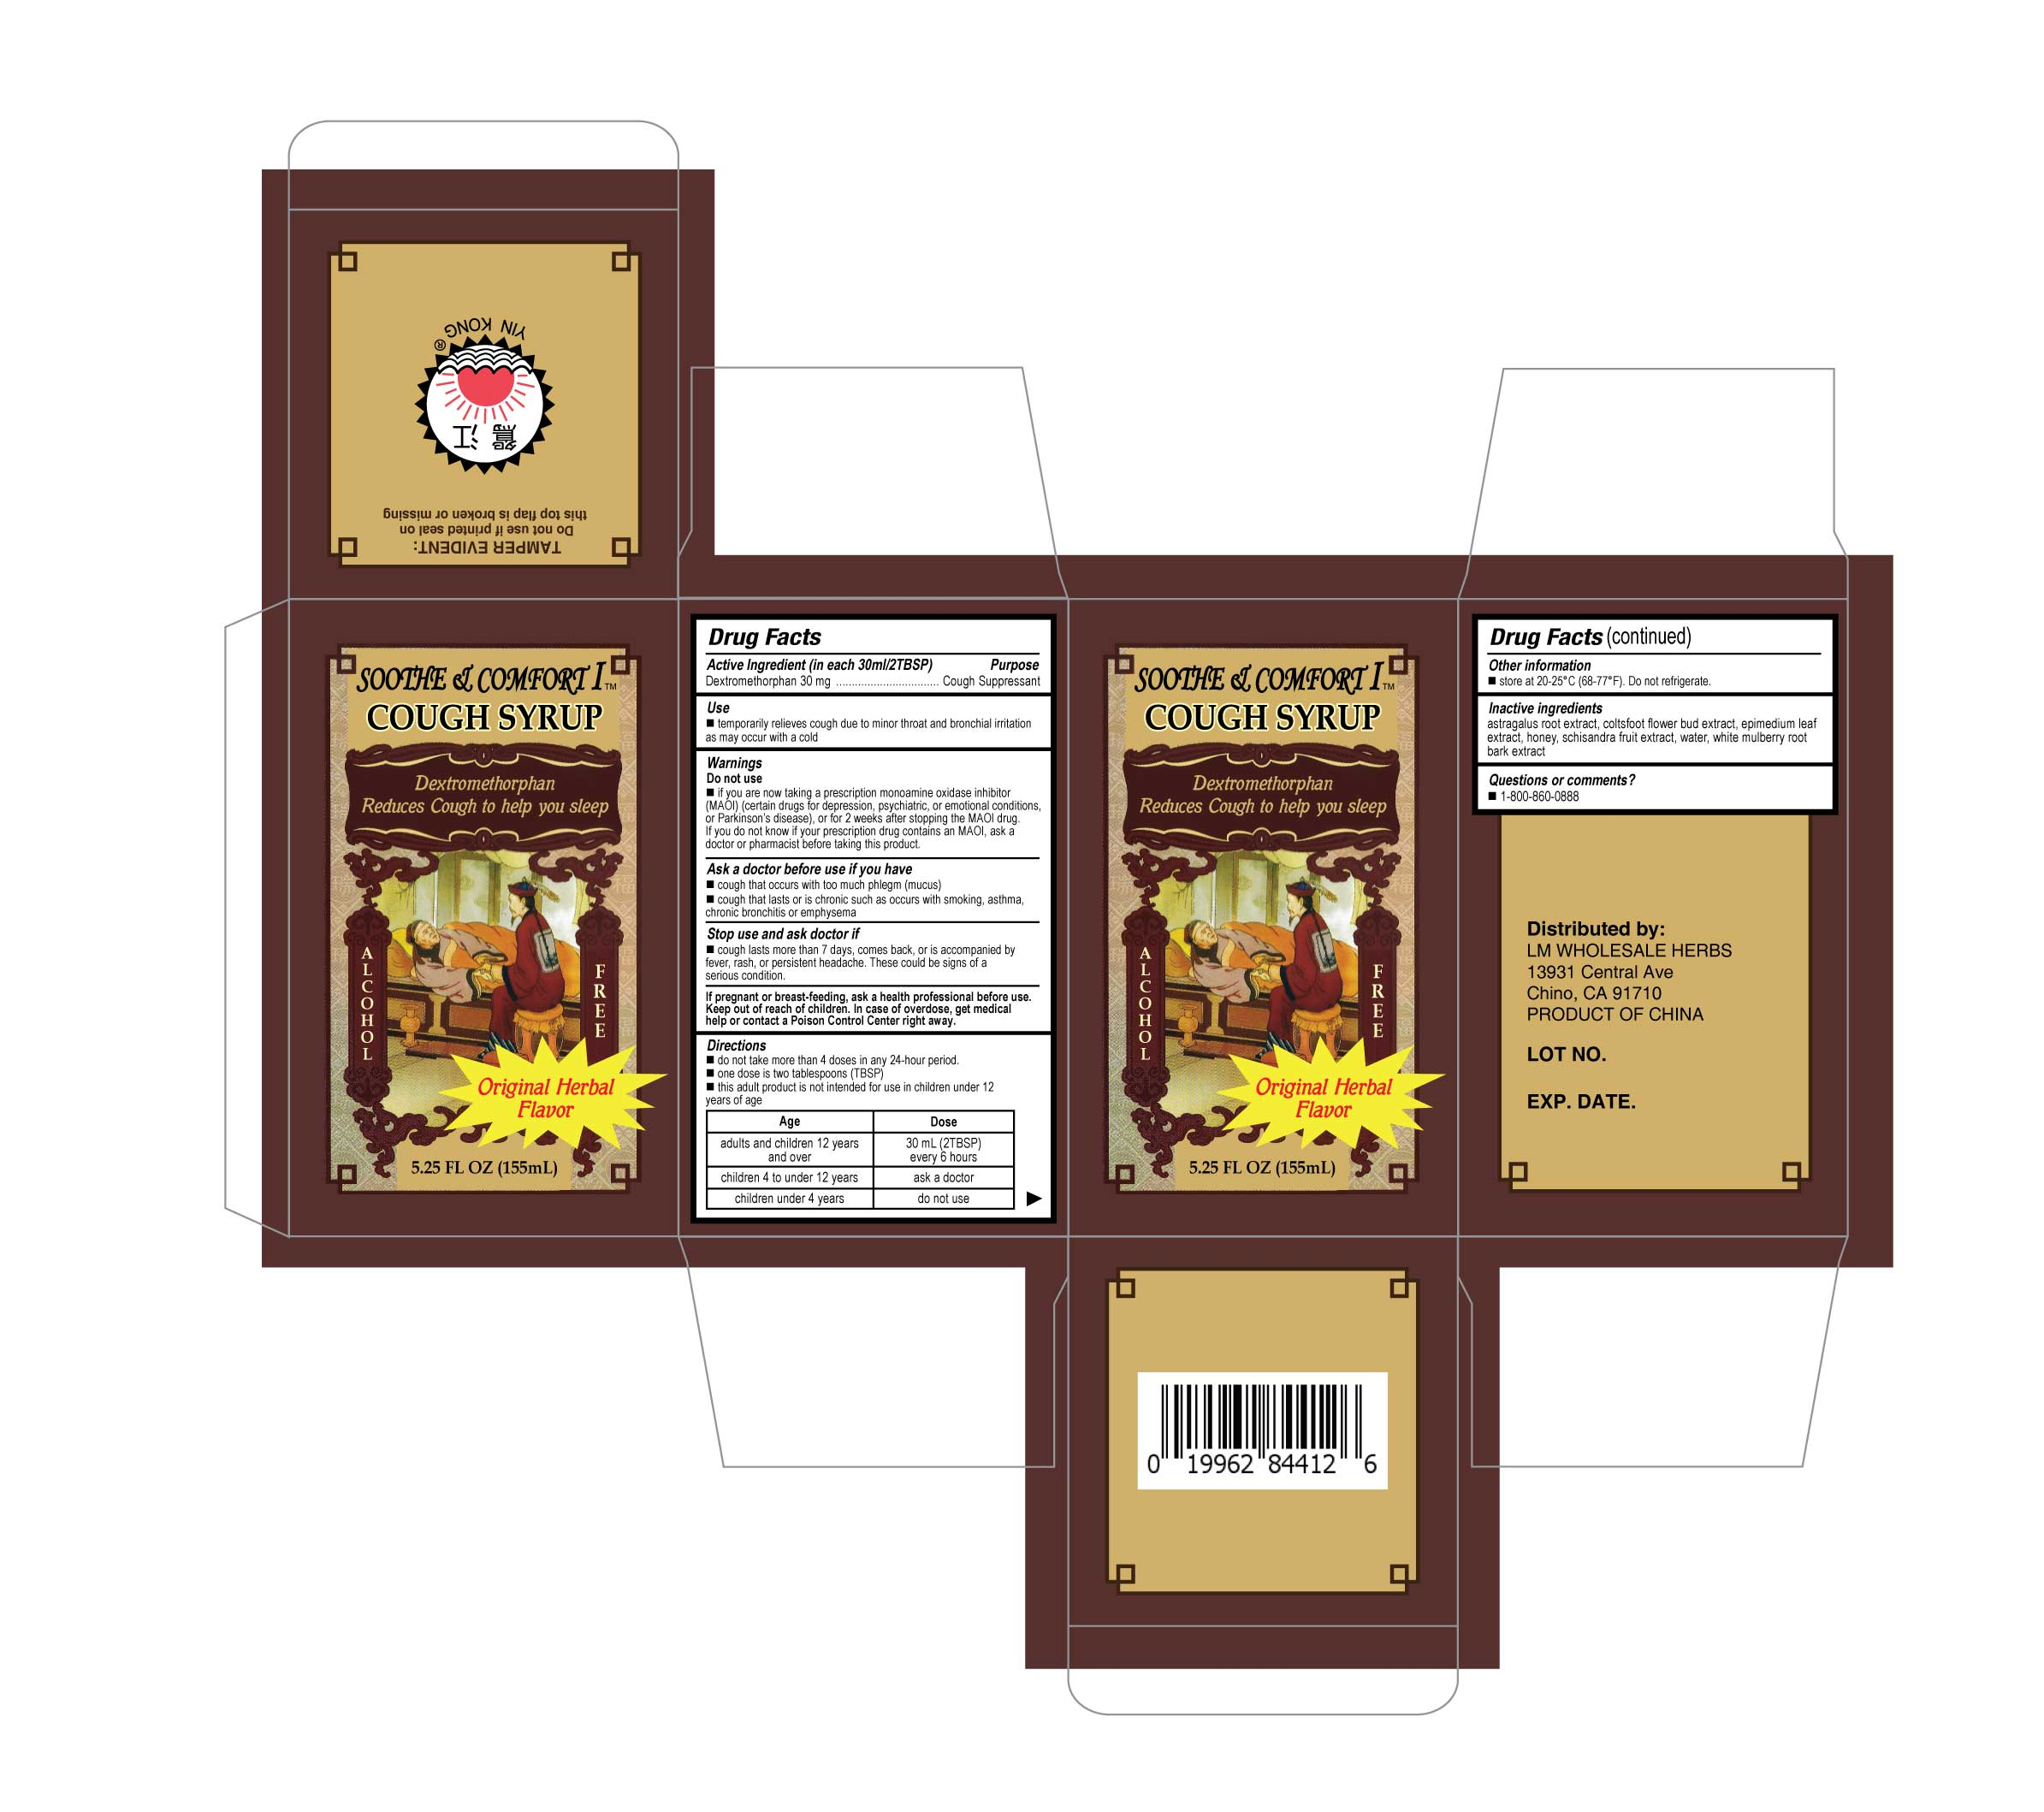 package label